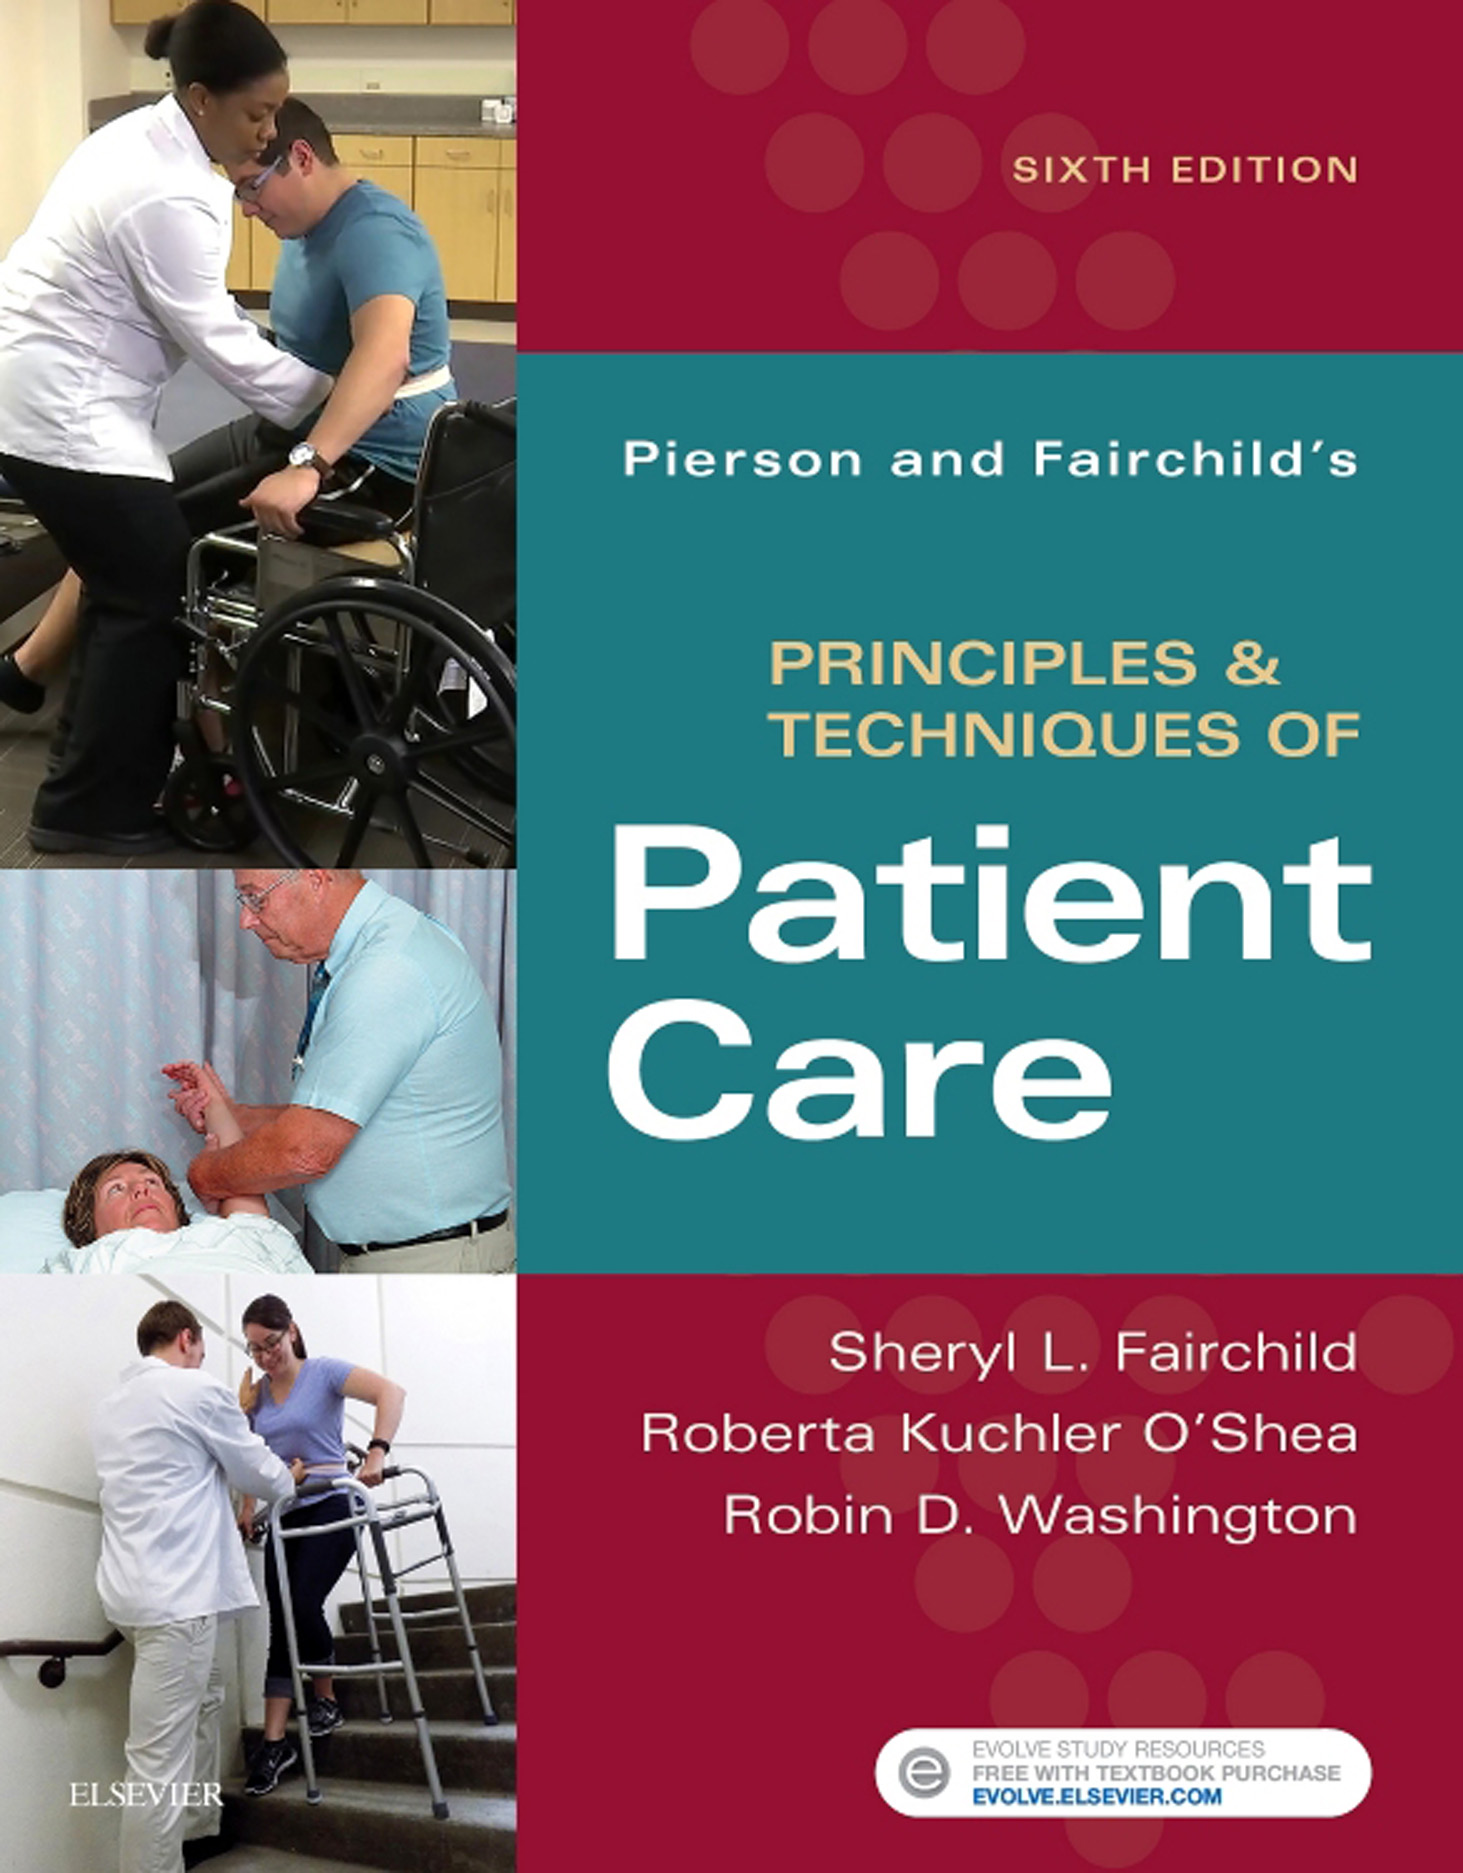 Pierson and Fairchild's Principles & Techniques of Patient Care - E-Book